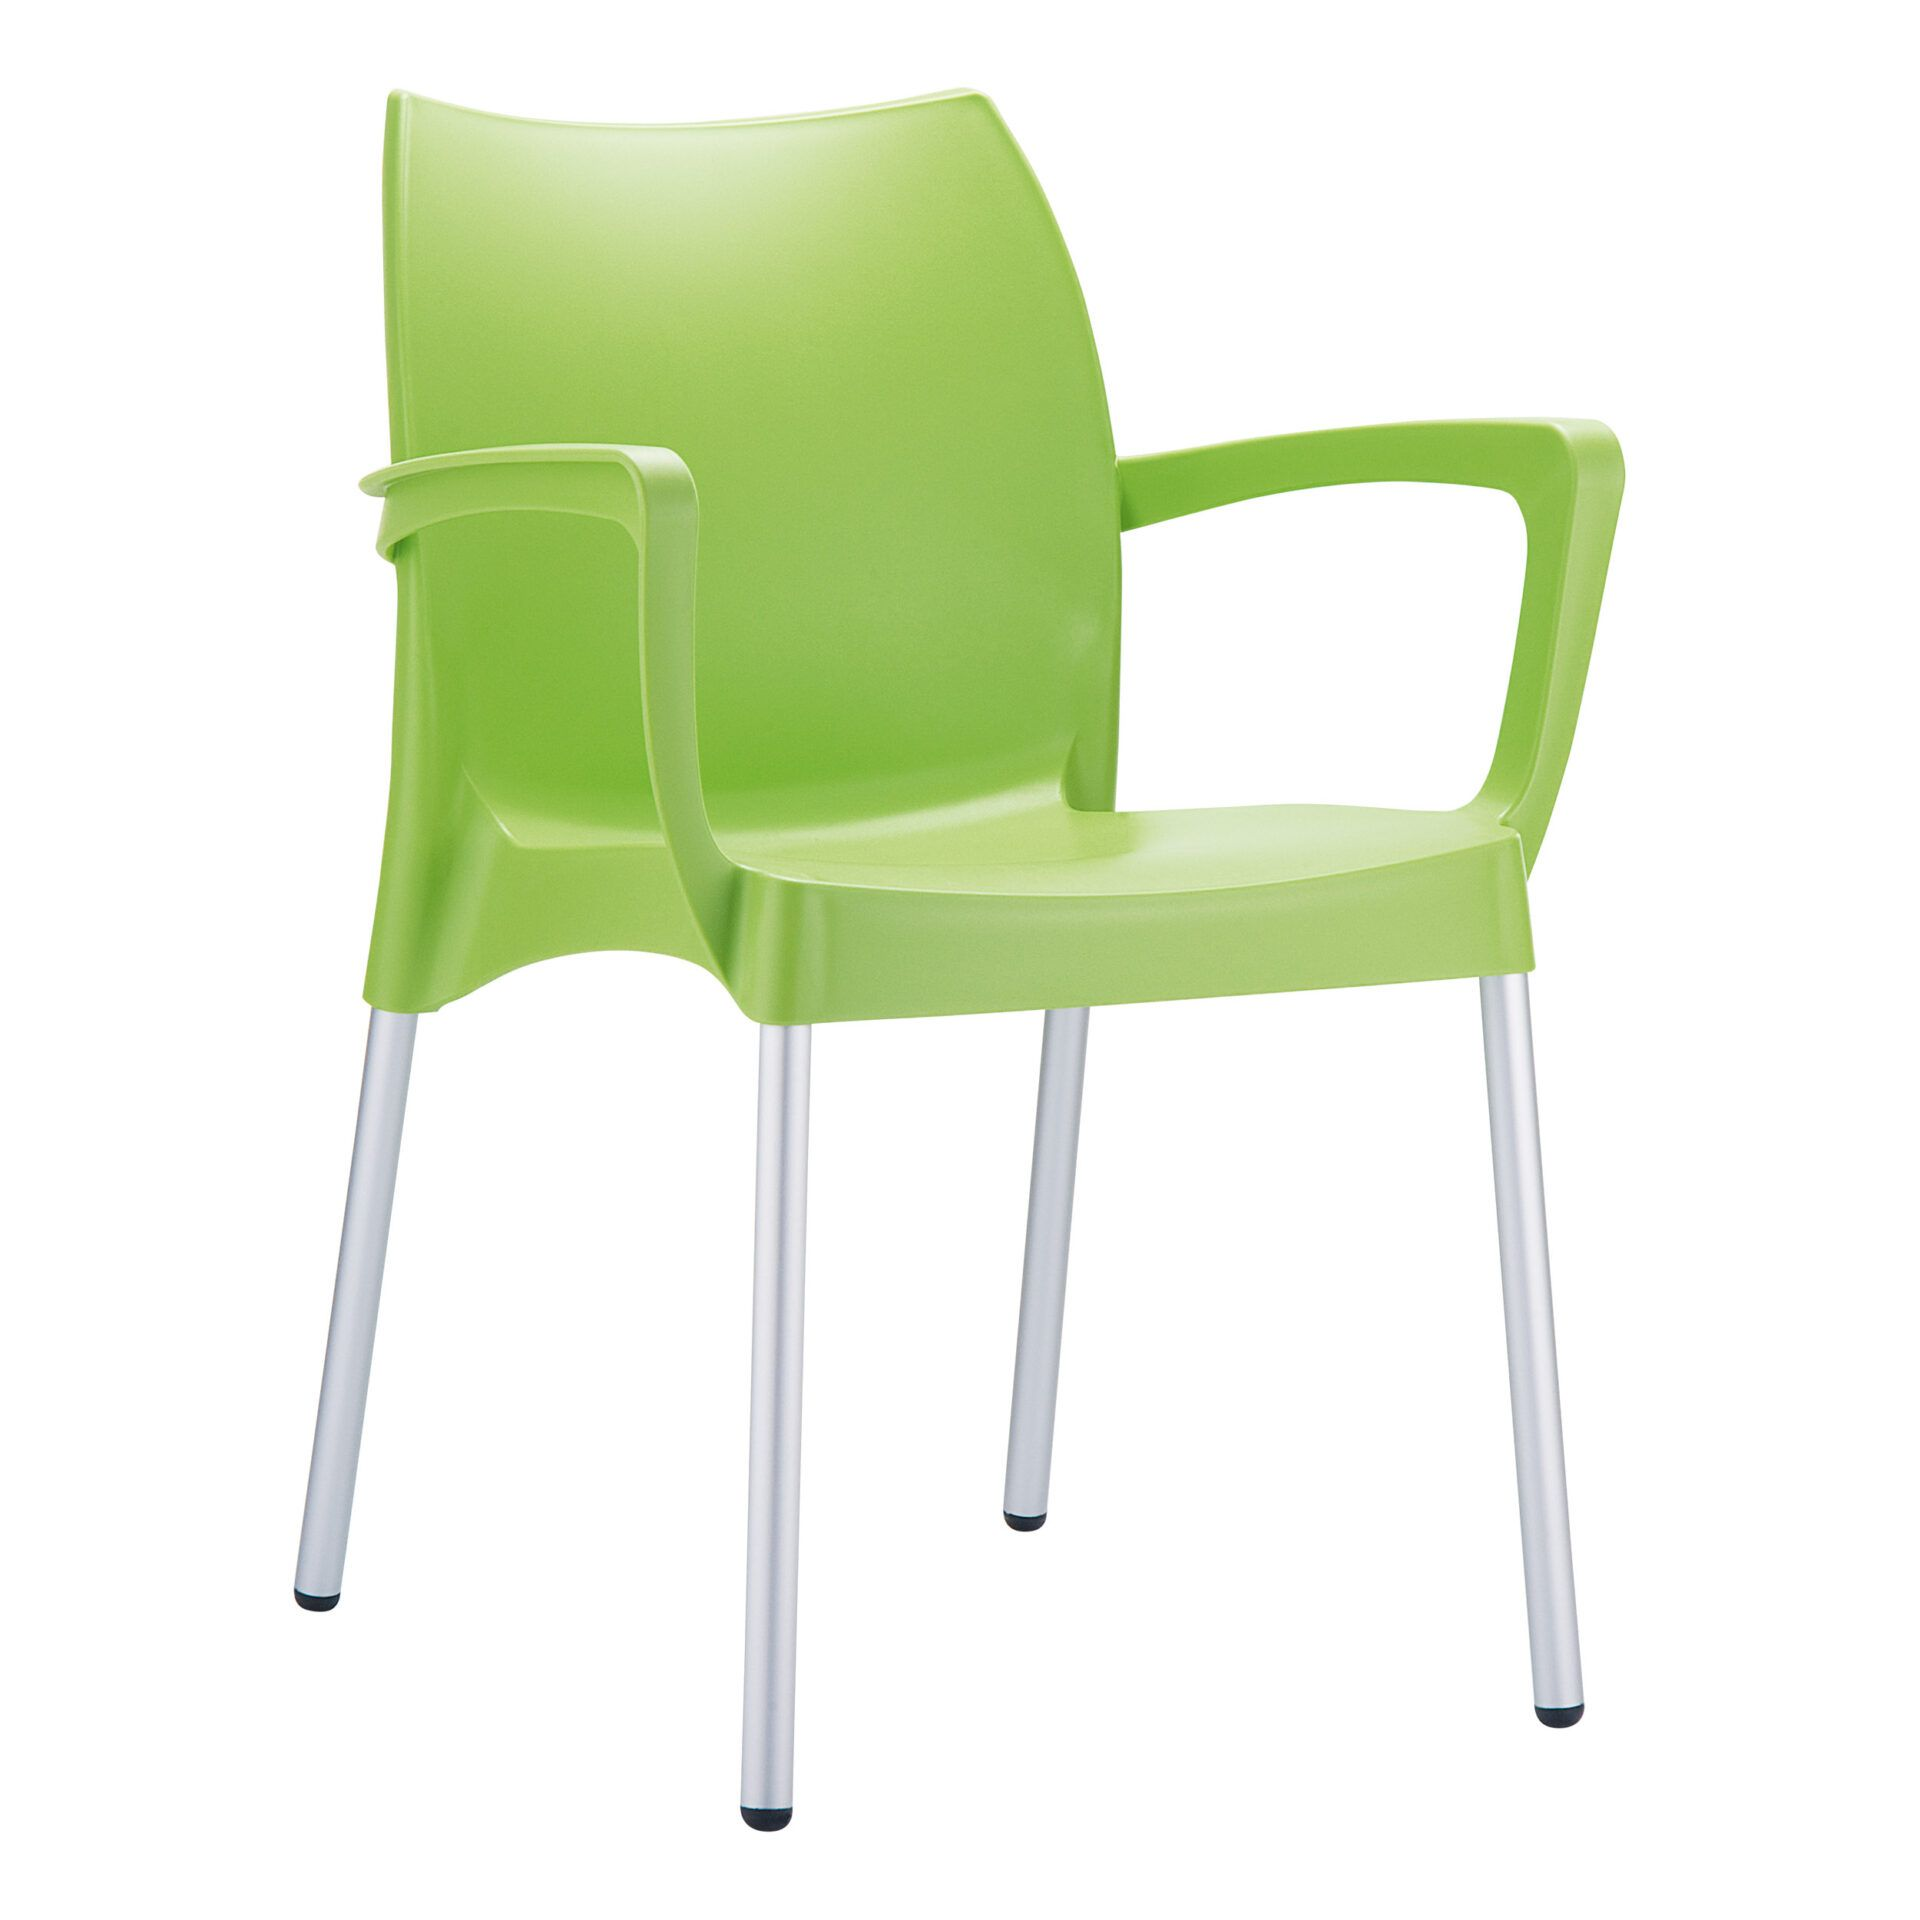 commercial polypropylene dolce chair green front side